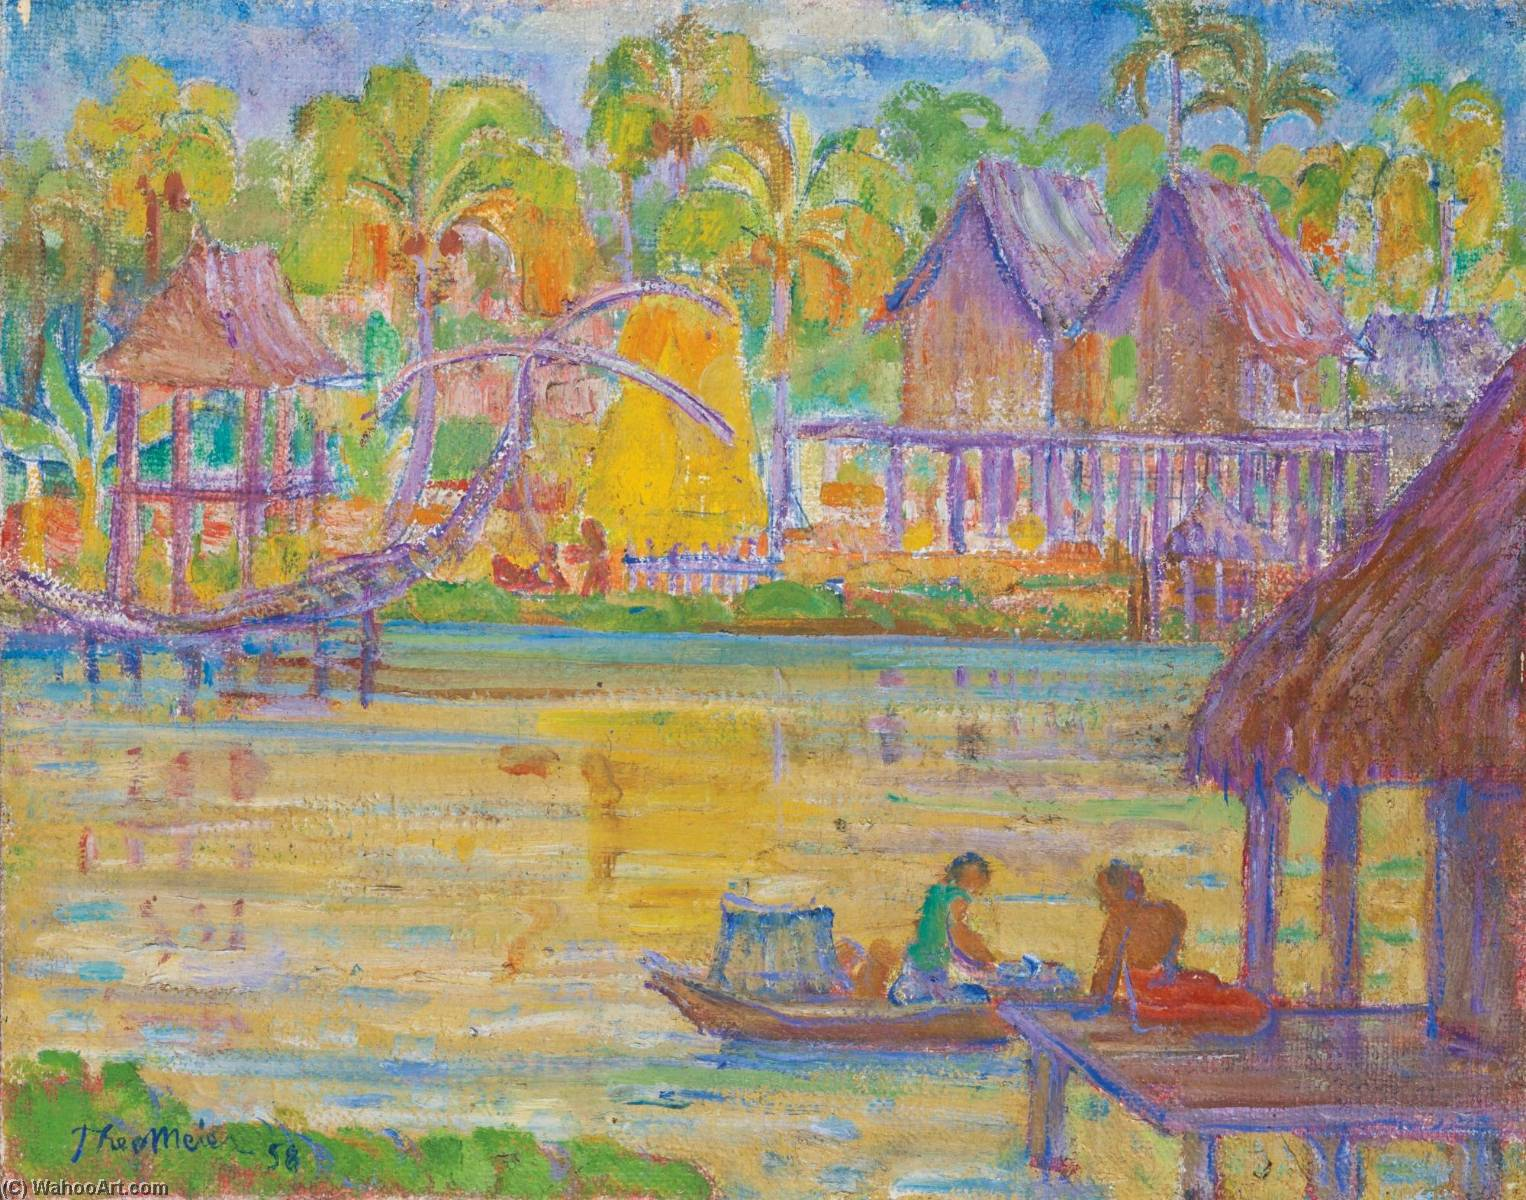 Village on a Lake, Hua Hin, Oil On Canvas by Theo Meier